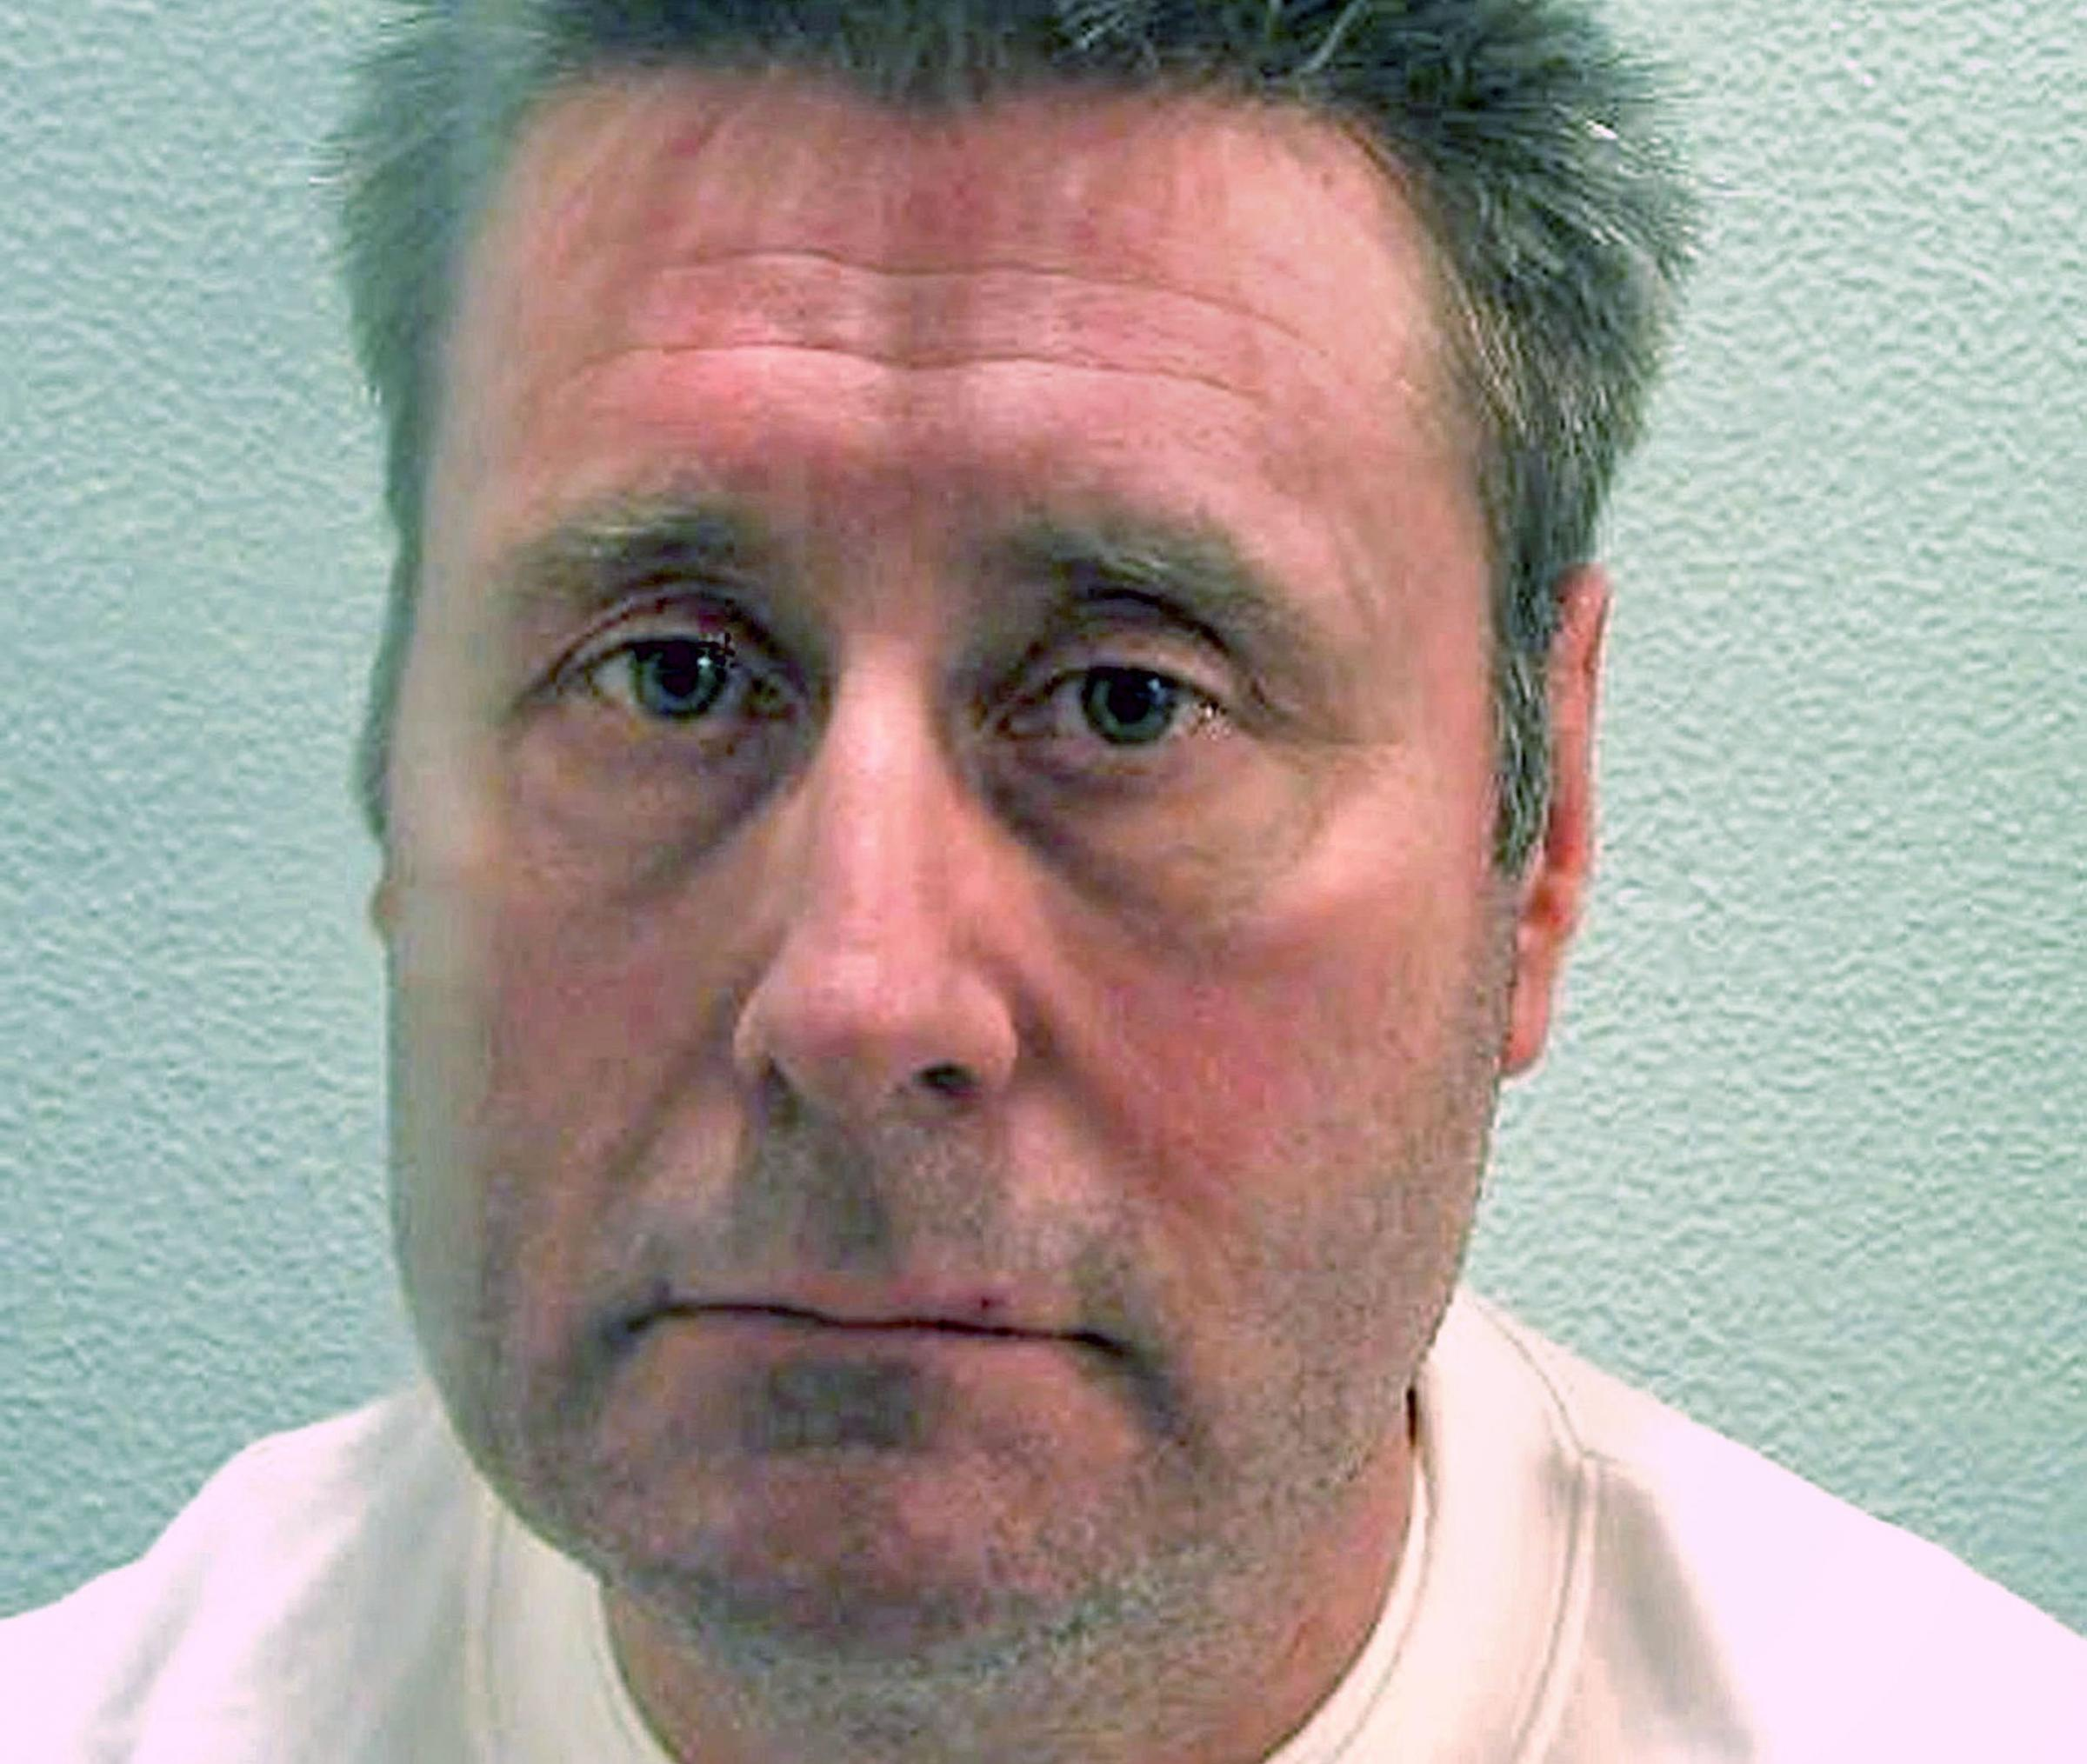 John Worboys was found guilty of 19 sex crimes but has been cleared for release from prison after serving only eight years